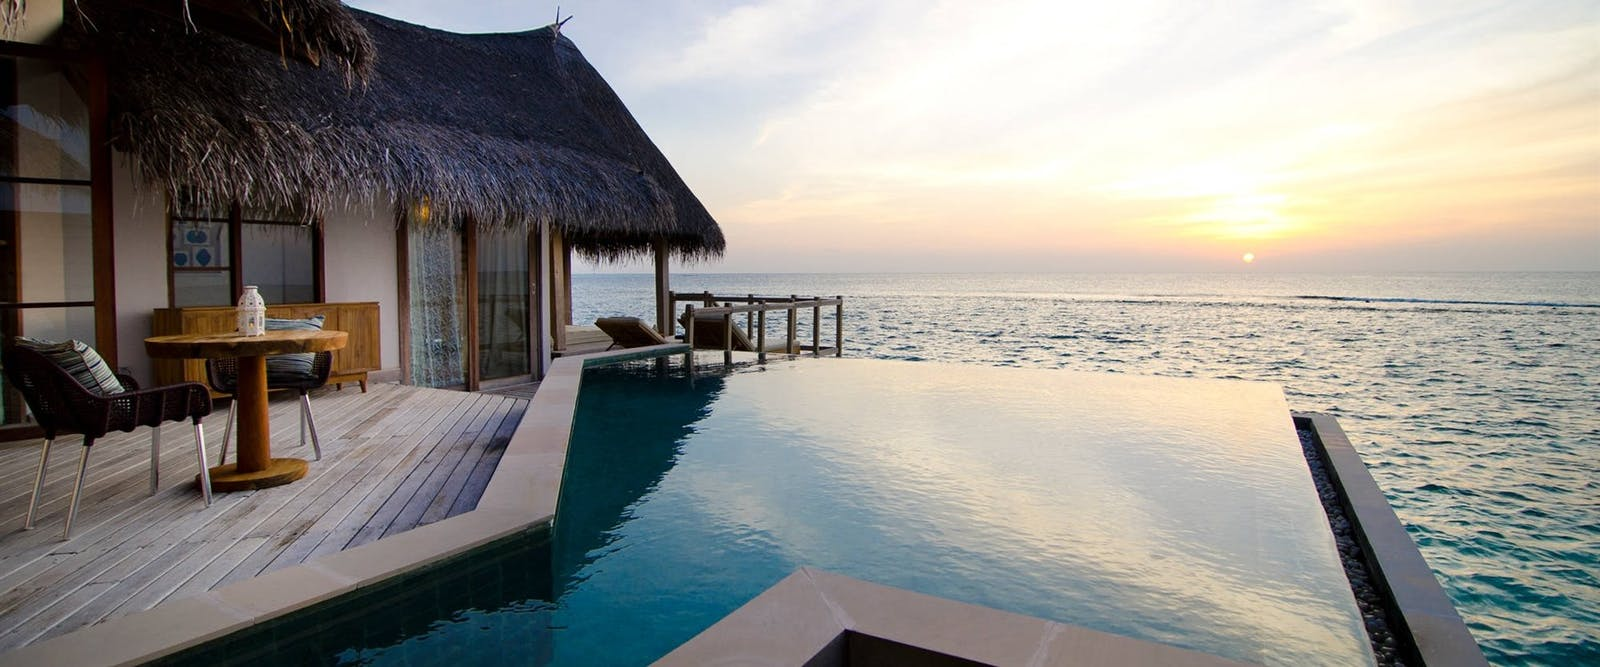 Ocean Suite with Pool at Jumeirah Vittaveli, Maldives